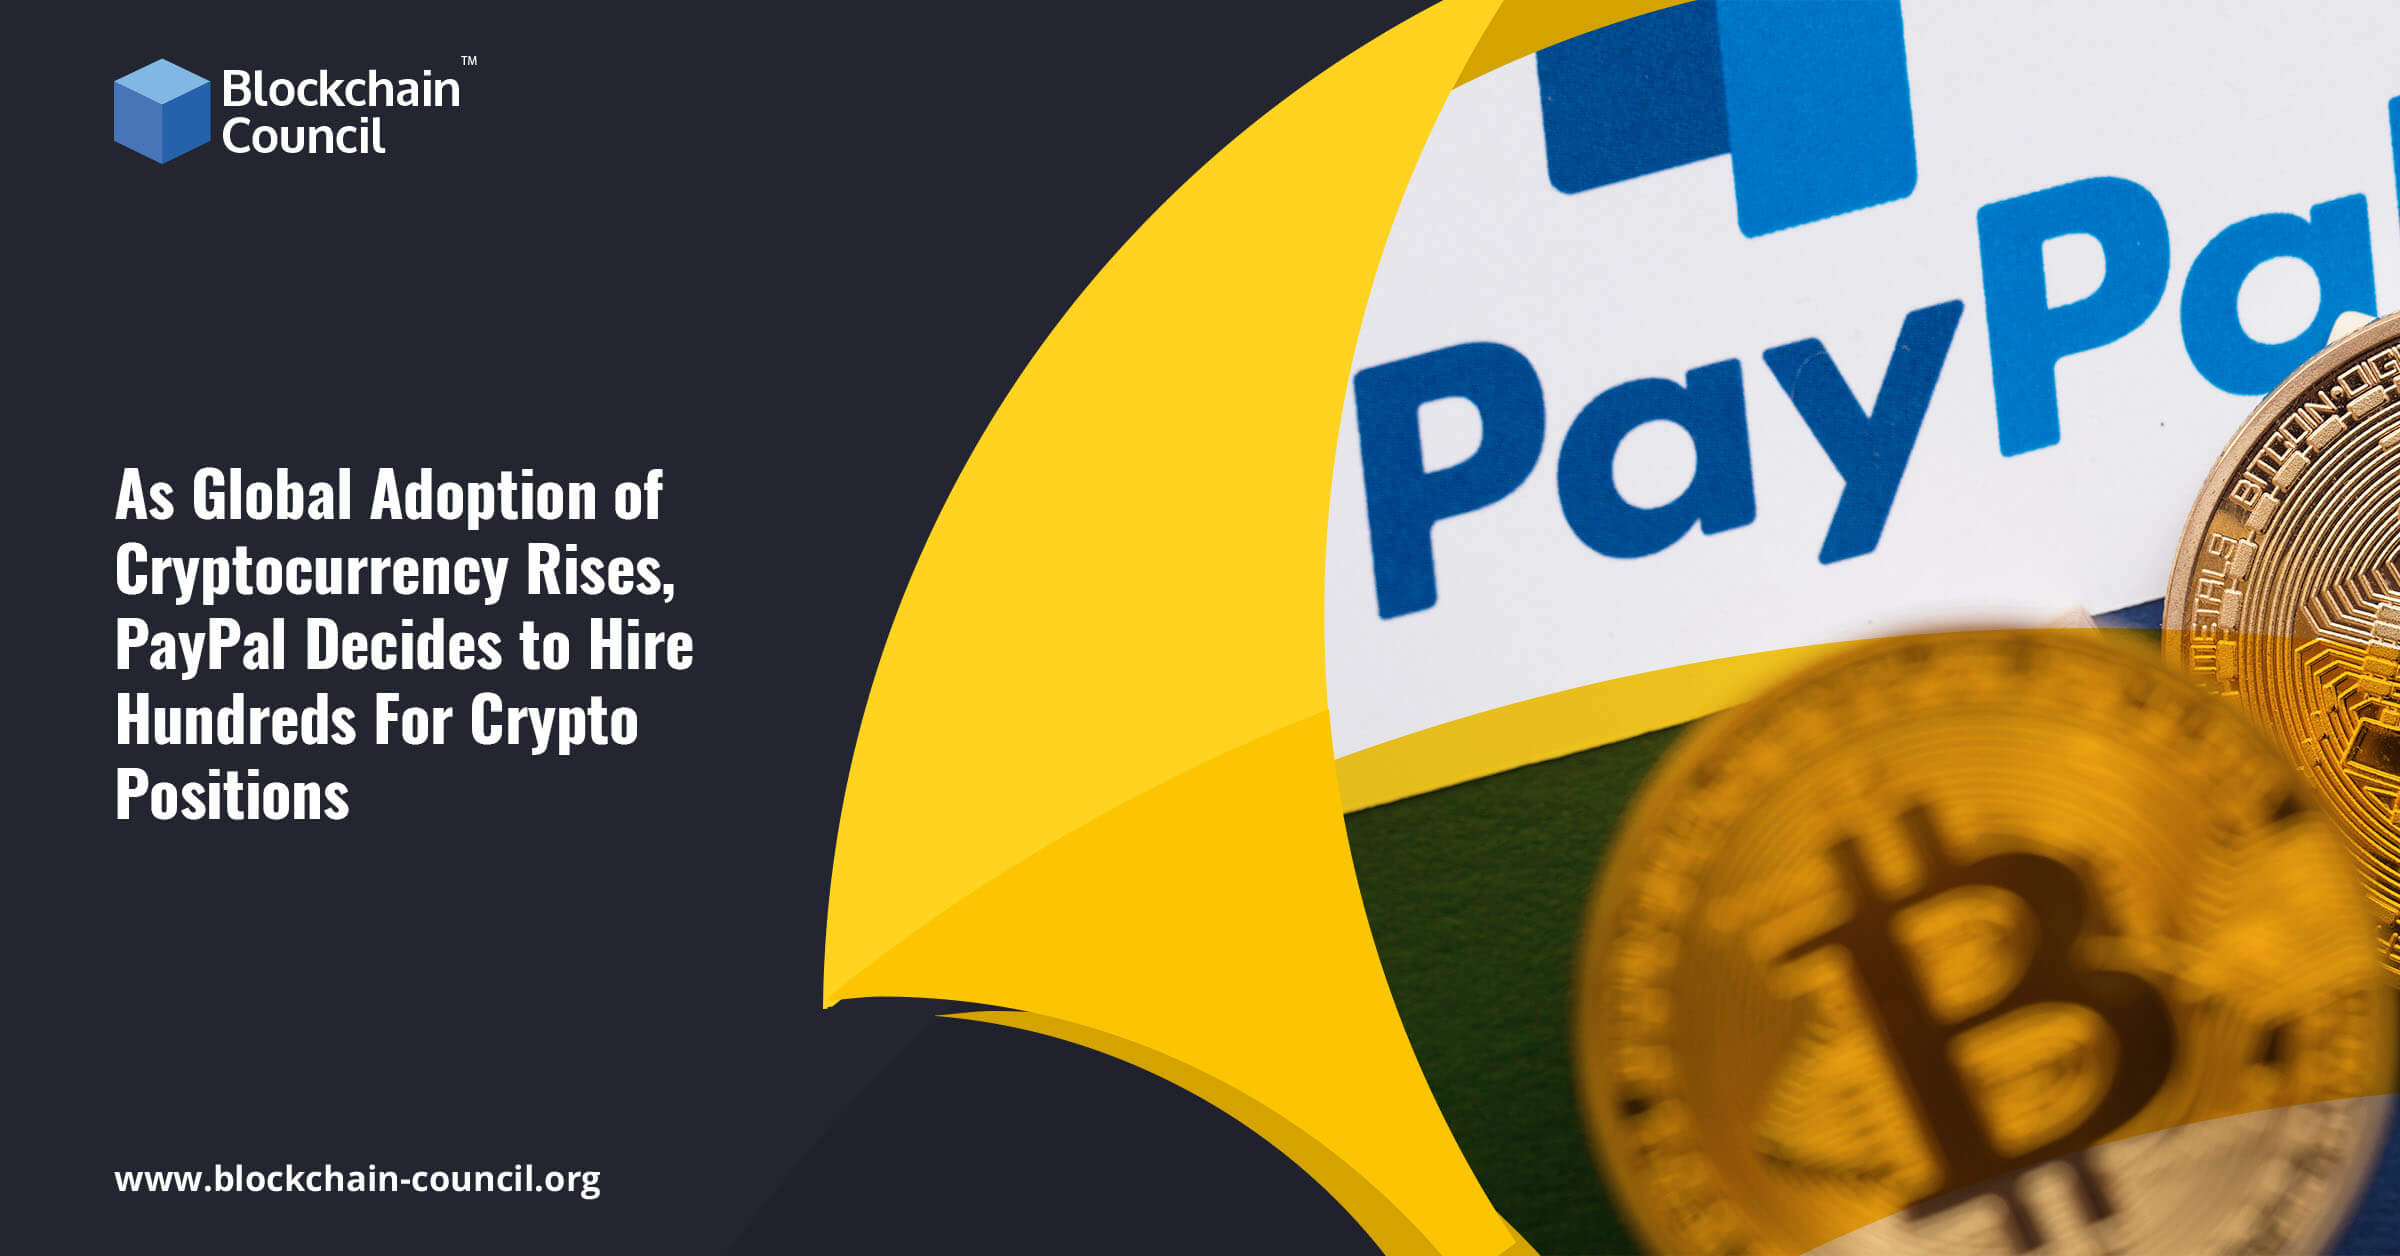 As Global Adoption of Cryptocurrency Rises PayPal Decides to Hire Hundreds For Crypto Positions